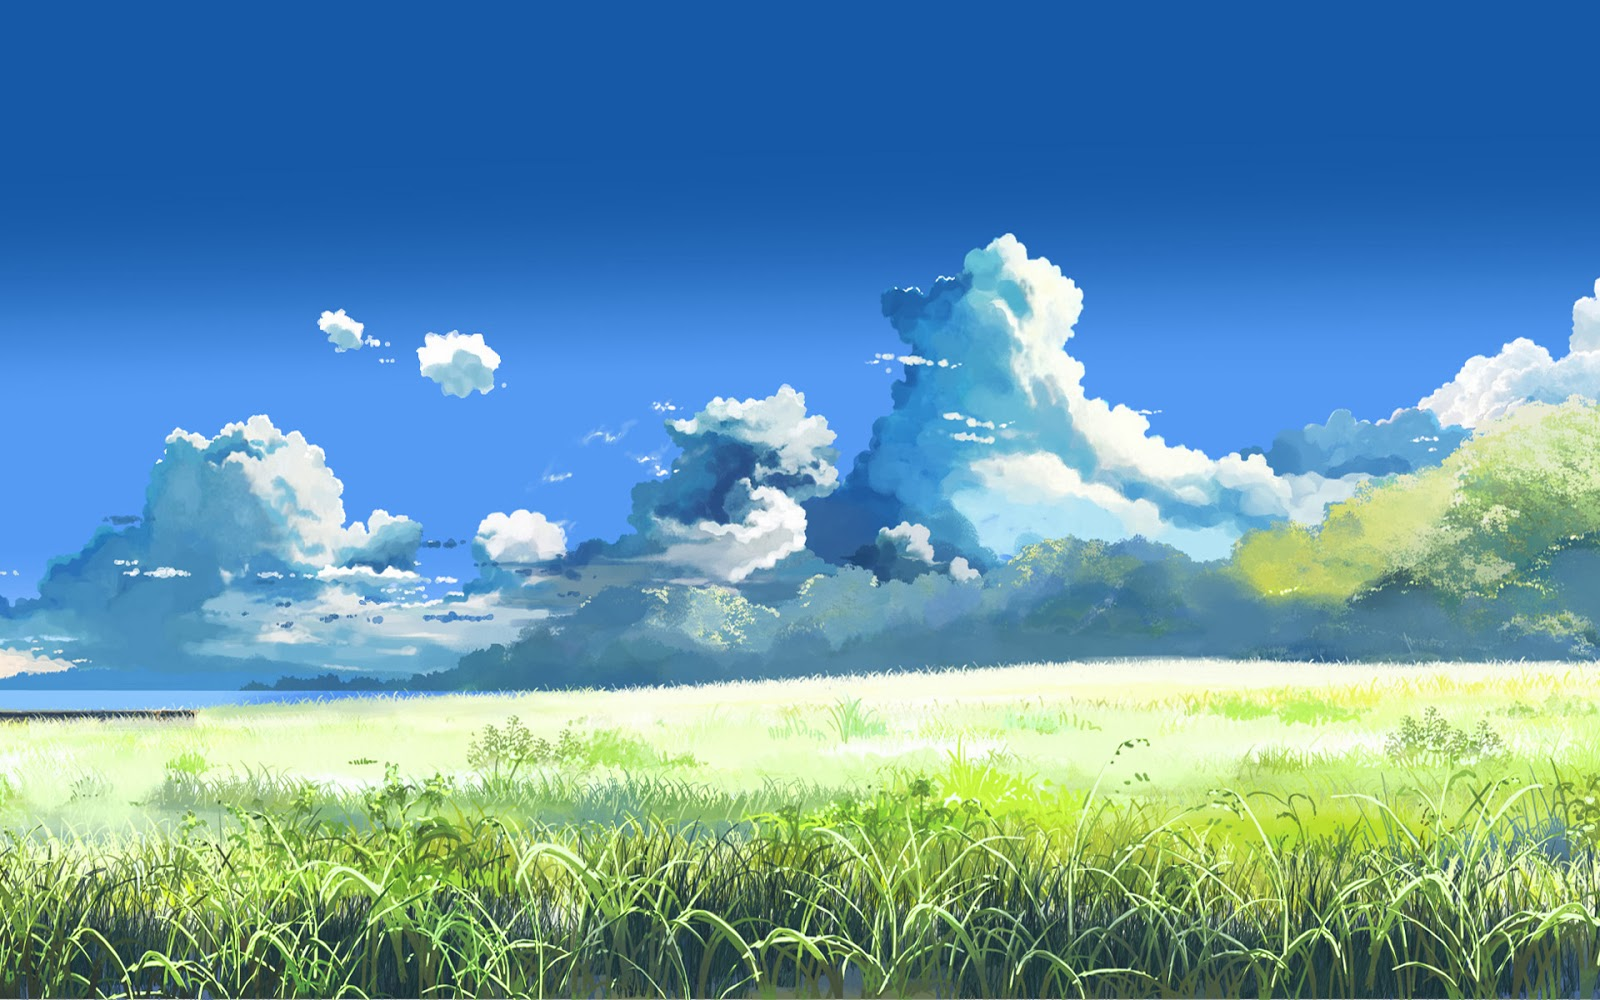 Free hd wallpaper download 5 centimeters per second wallpaper - 2d nature wallpapers ...